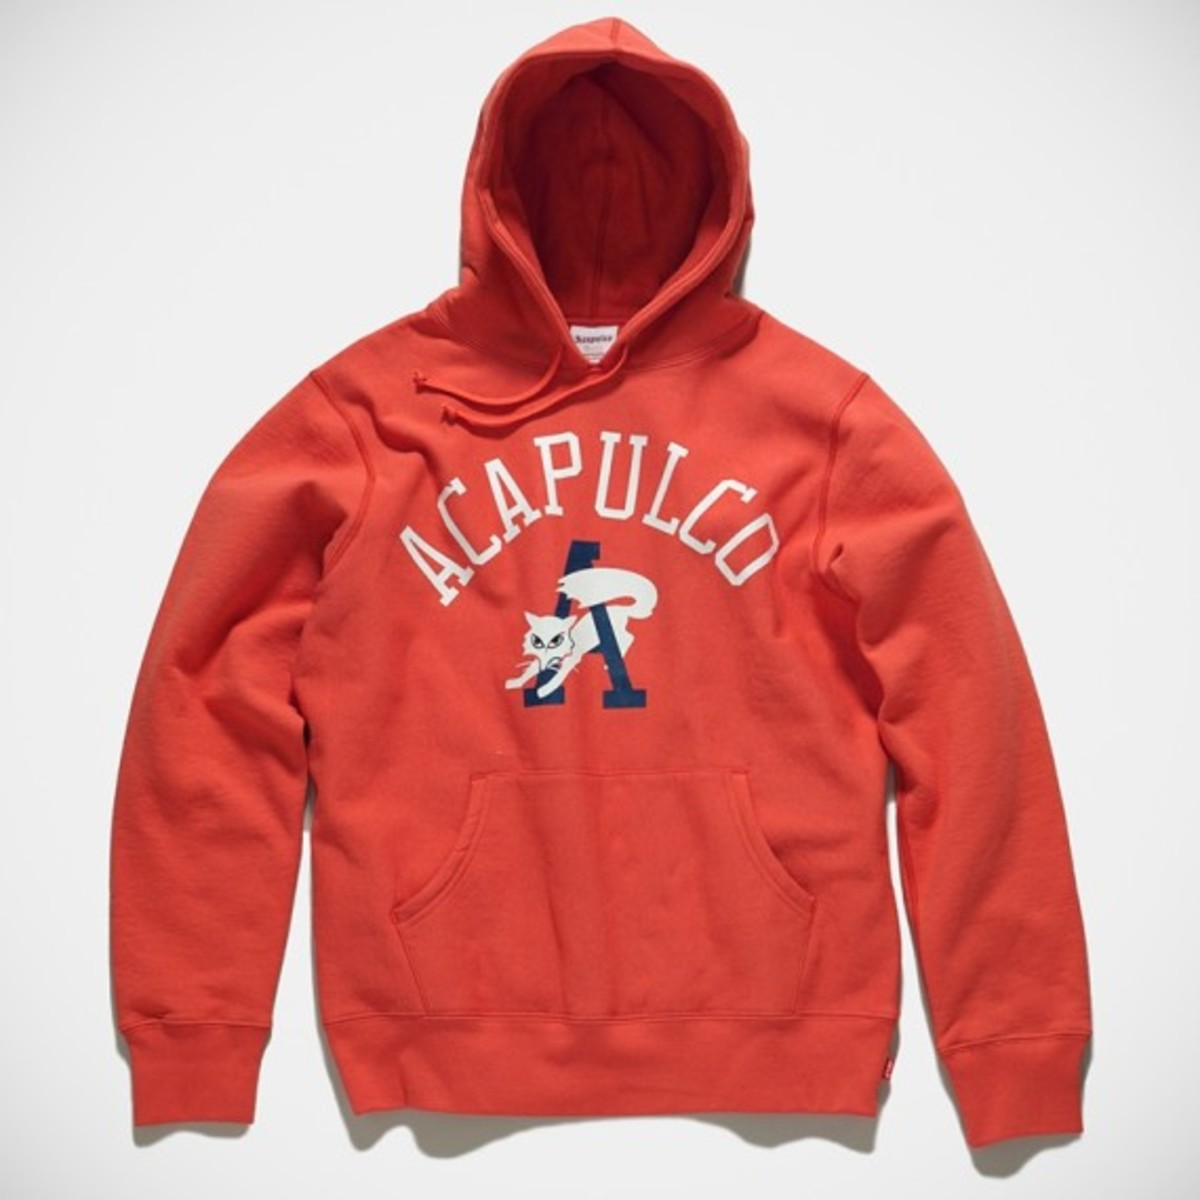 acapulco-gold-spring-2014-collection-delivery-1-27